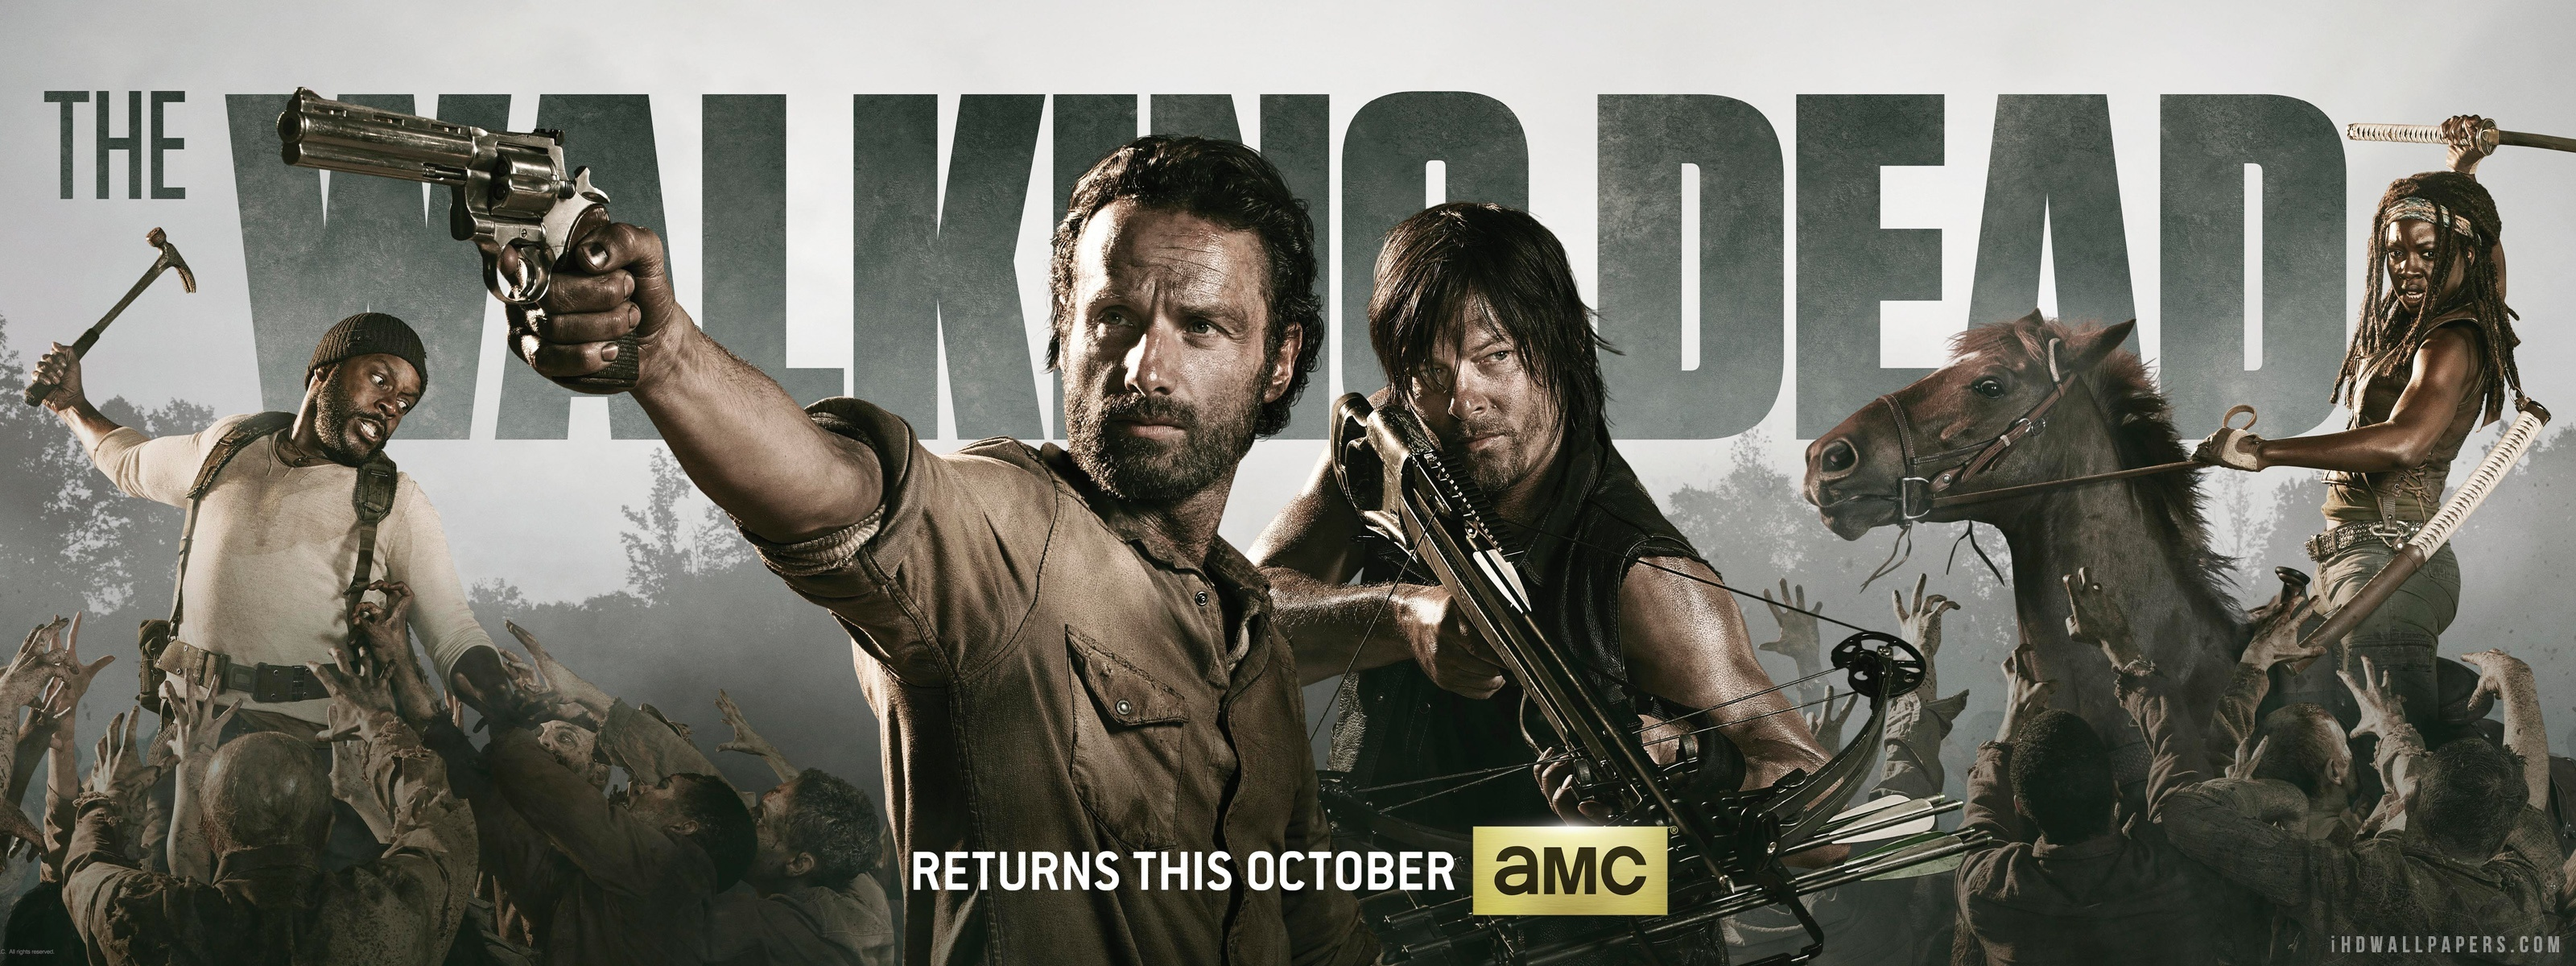 Movies the walking dead season 4 wallpapers desktop phone tablet movies the walking dead season 4 wallpapers desktop phone tablet awesome desktop awesome wallpapers voltagebd Gallery